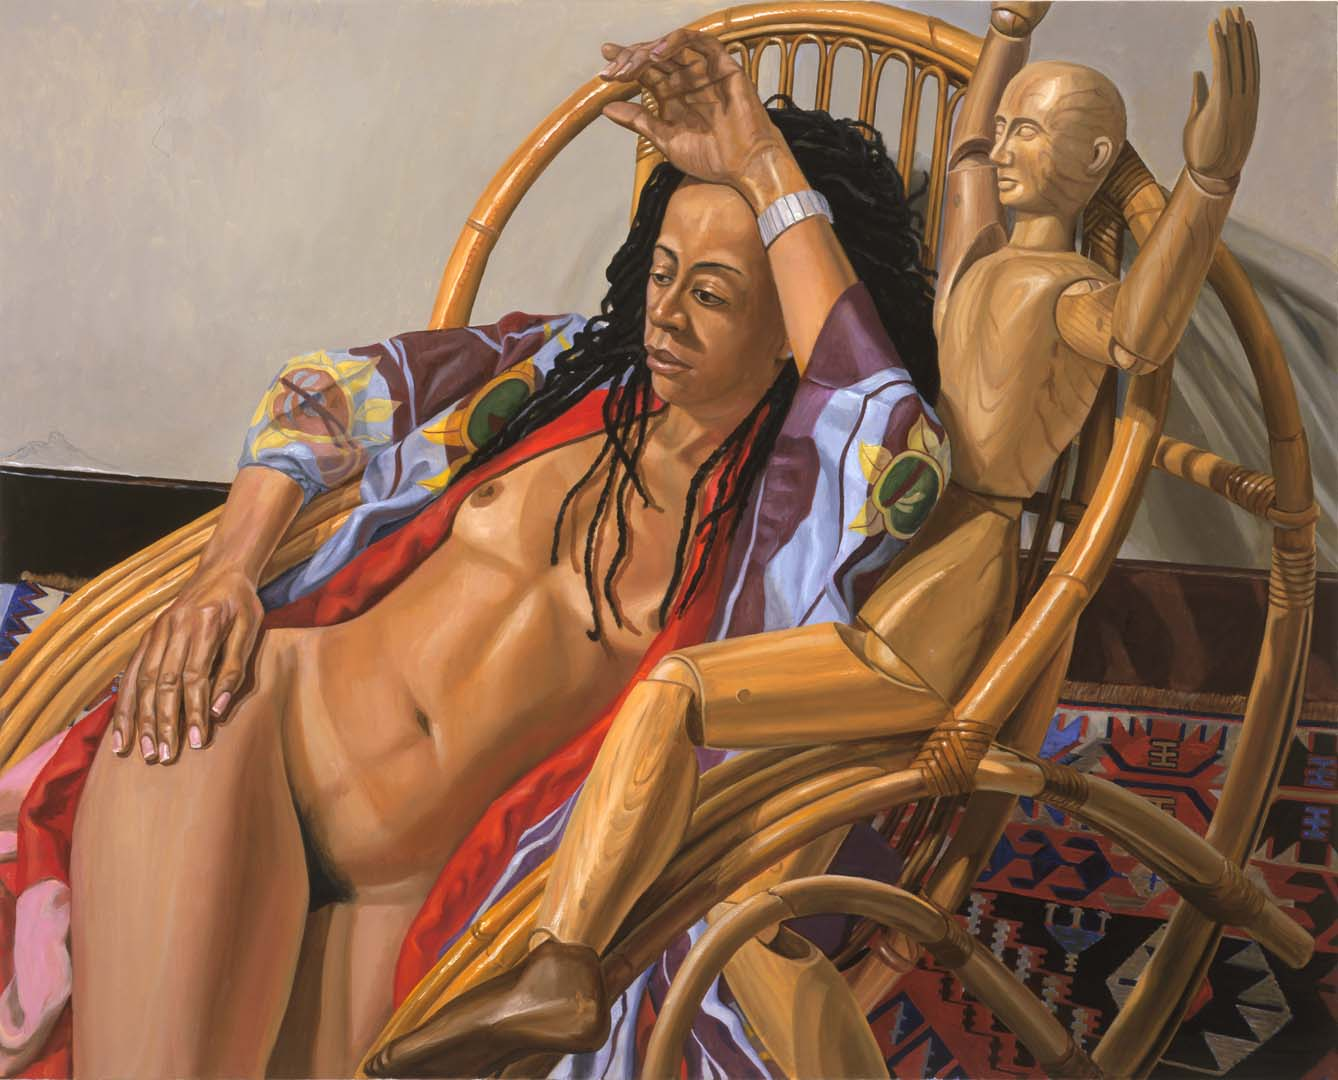 "2005 Model on Bamboo Lounge with Artist Mannequin Oil on Canvas 48"" x 60"""